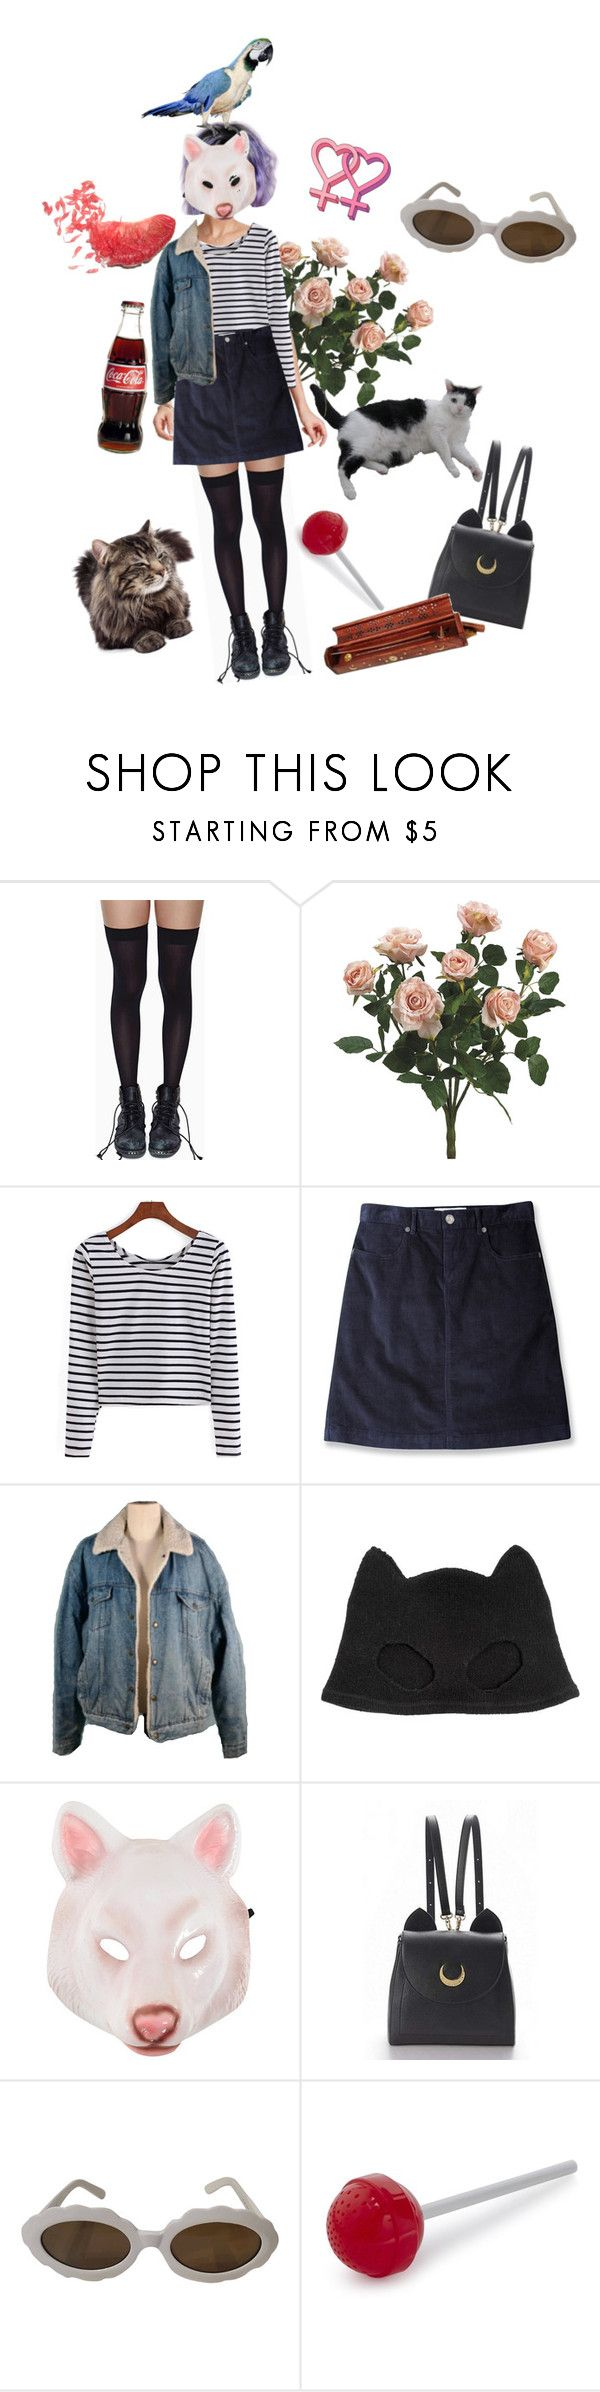 """""""heard your bf was away this weekend"""" by plllllrf ❤ liked on Polyvore featuring Leg Avenue, Mountain Khakis, Silver Spoon Attire, WithChic, Moschino and Fred"""